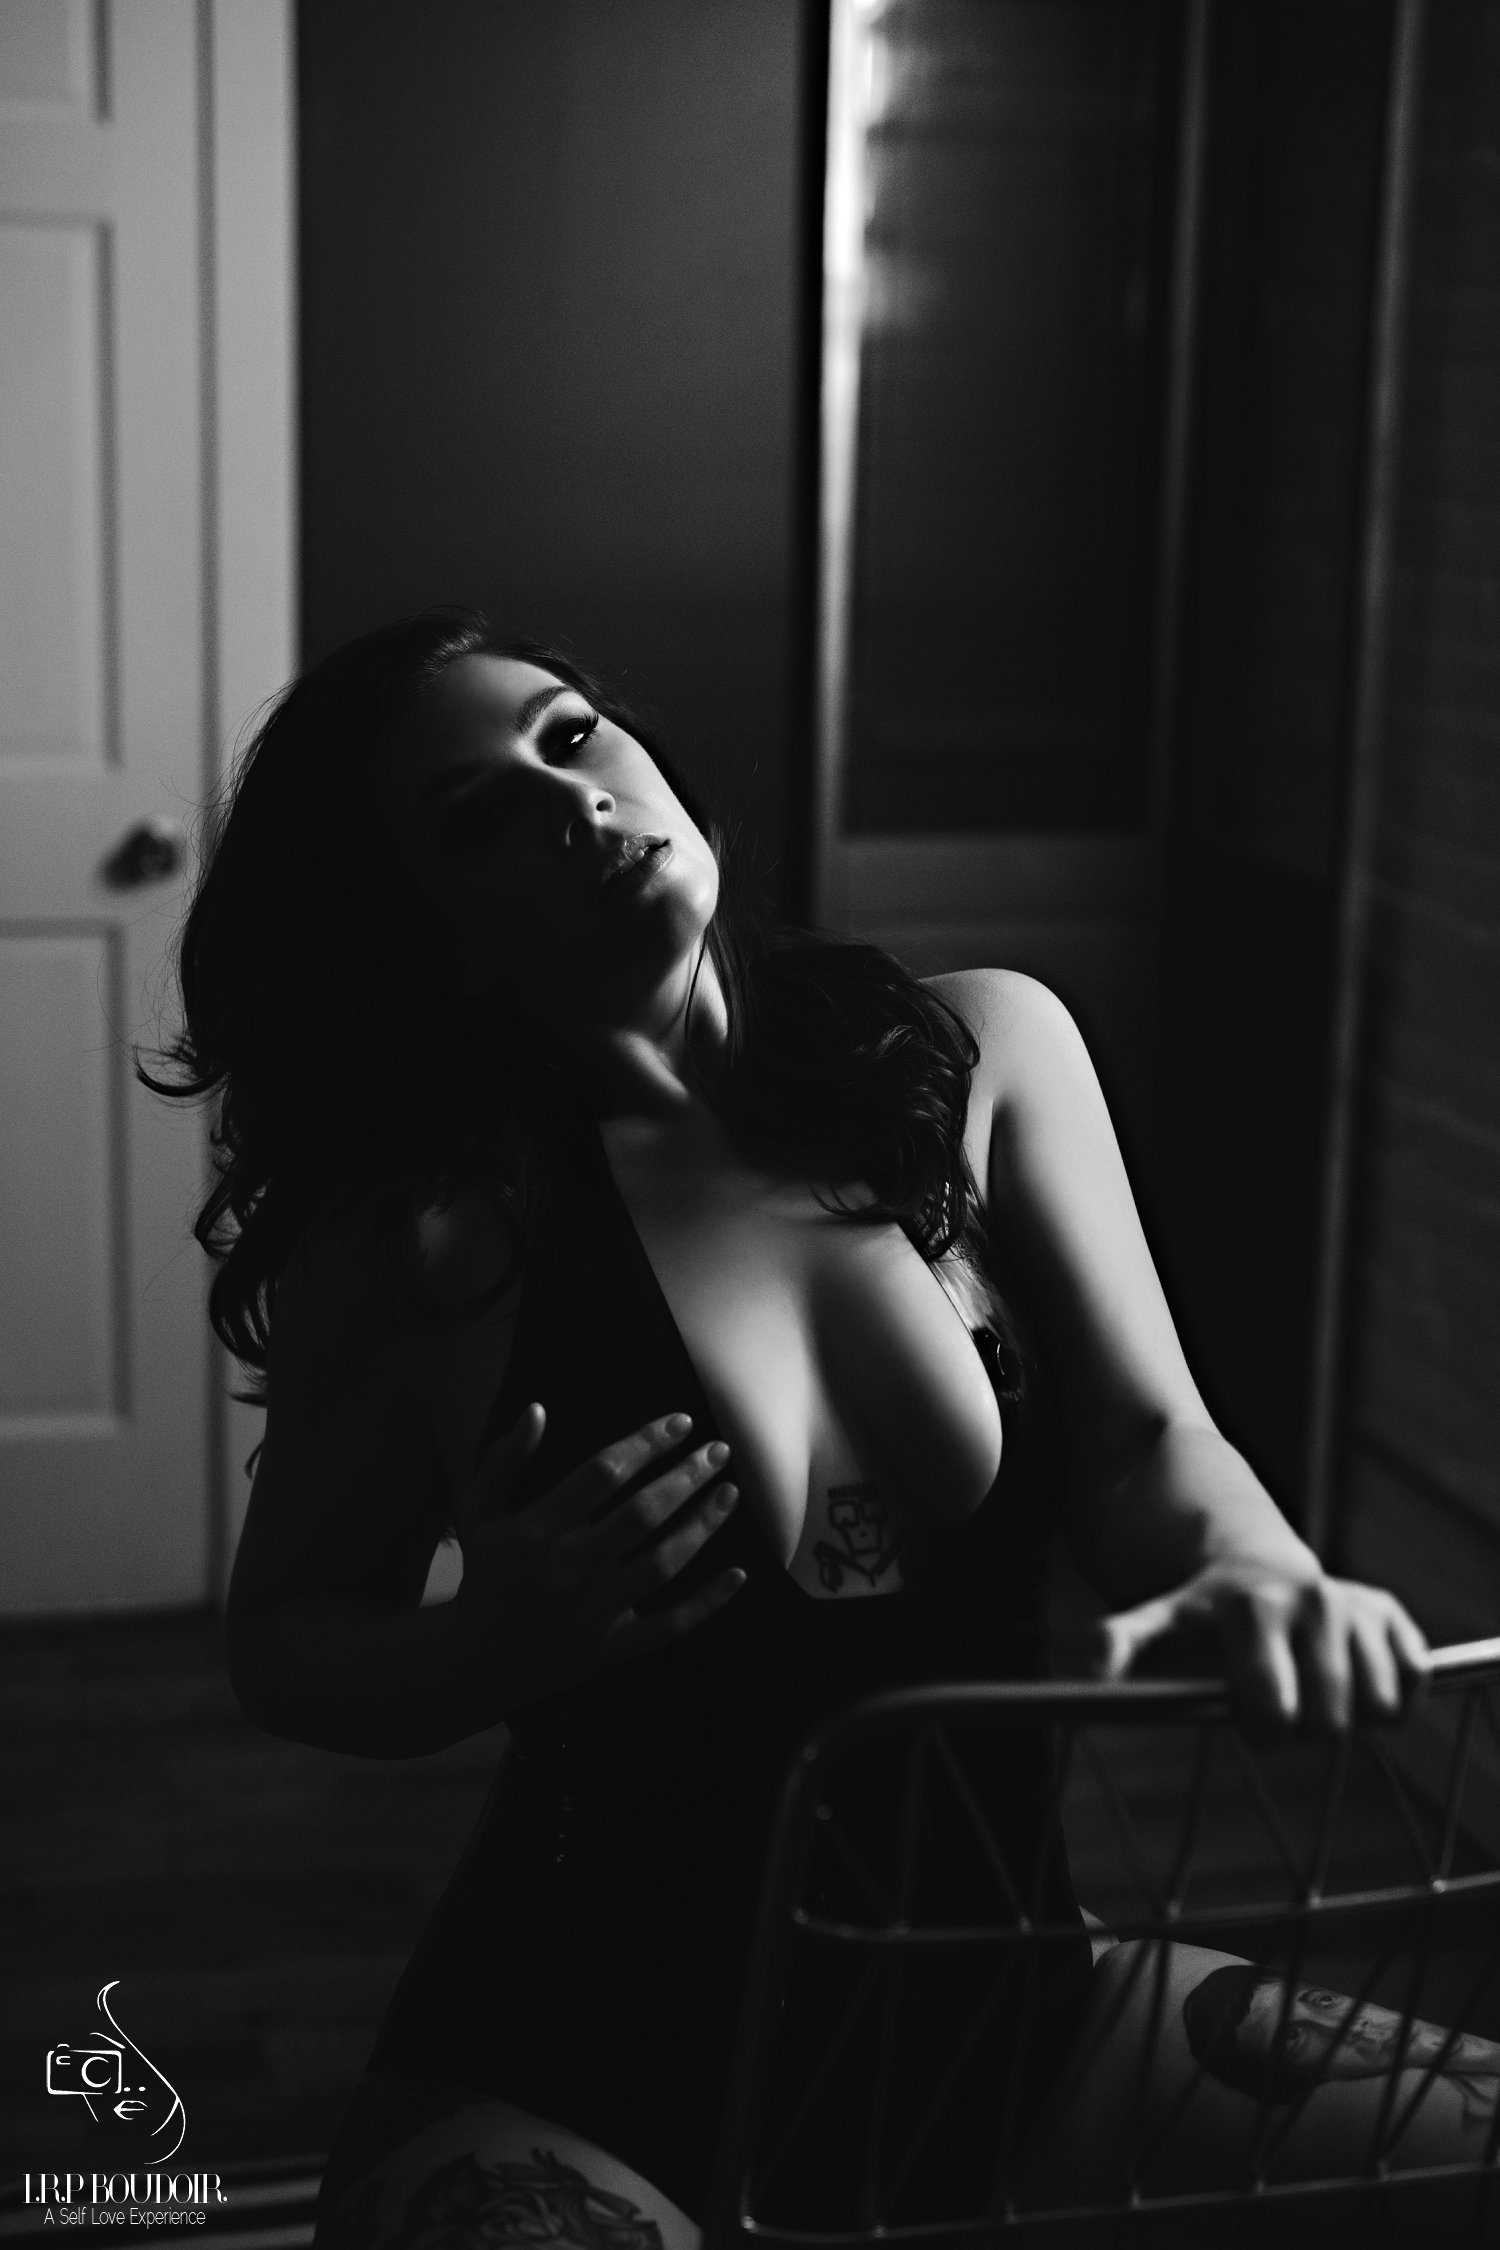 https://photographybylindsayrae.com/wp-content/uploads/2018/08/Boudoir-New-York-Self-Love-Experience-Albany-Saratoga-Springs-Troy_0215.jpg